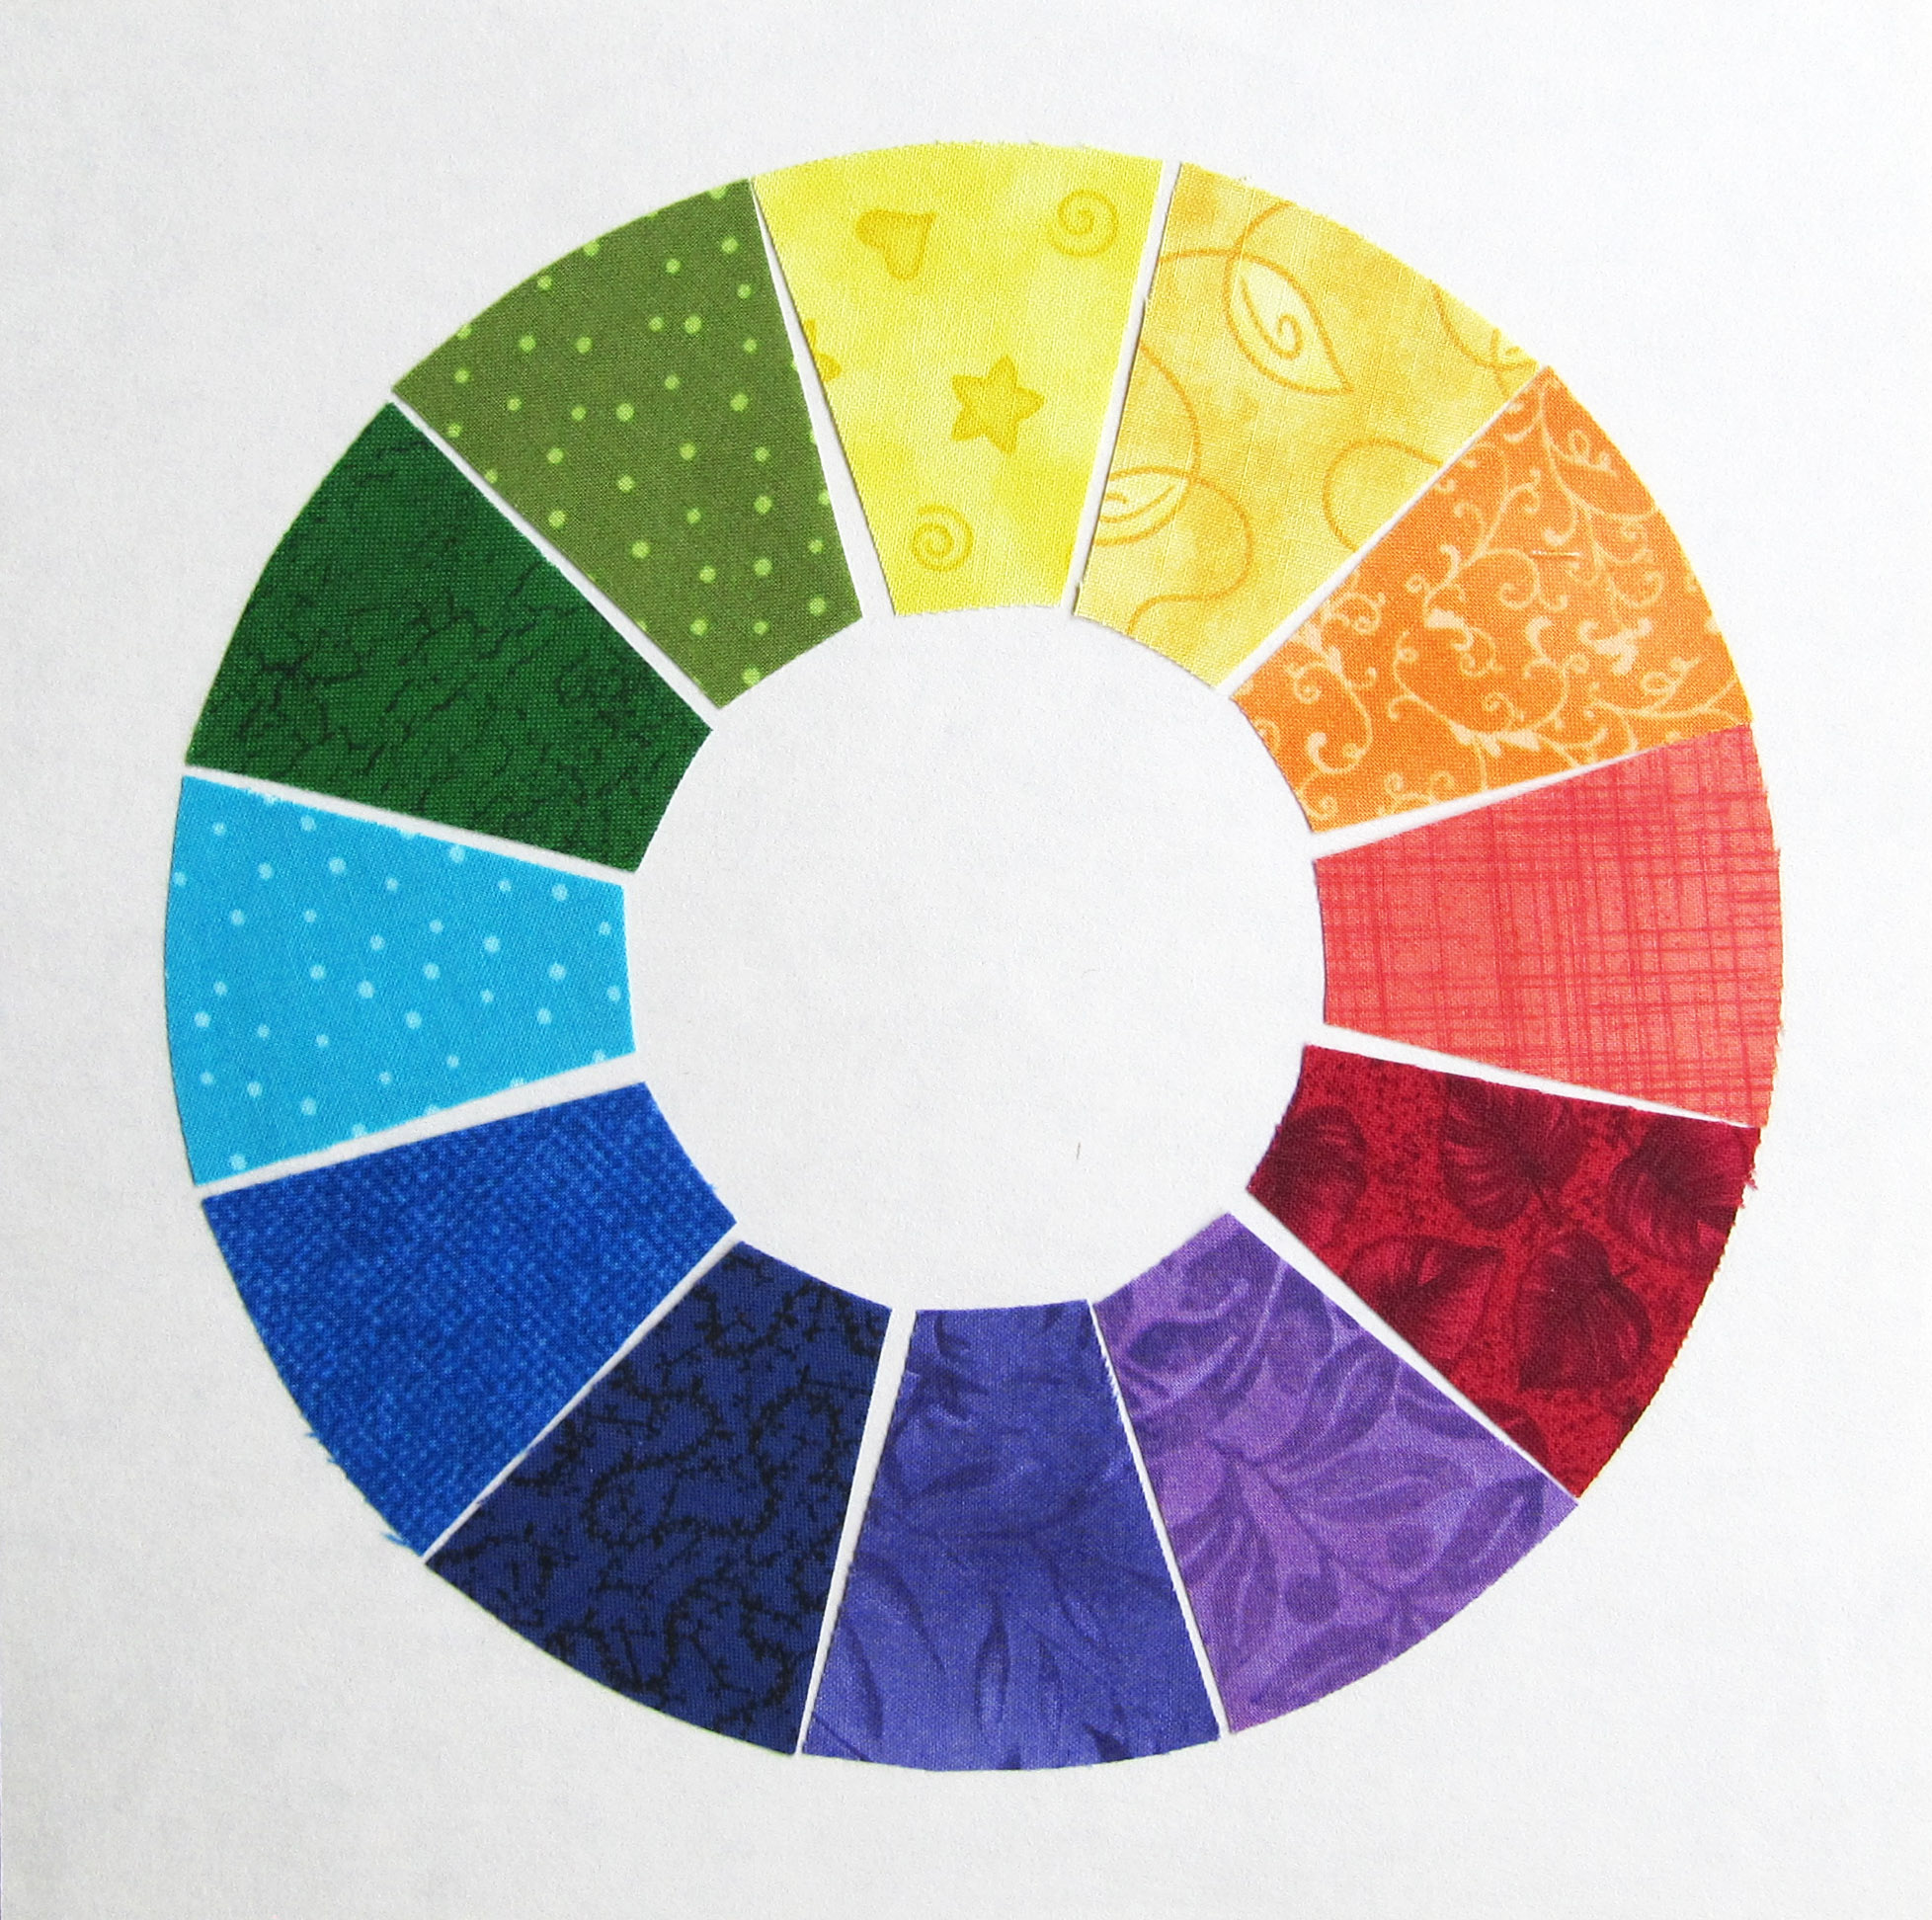 Color Wheel for Colorful Quilts